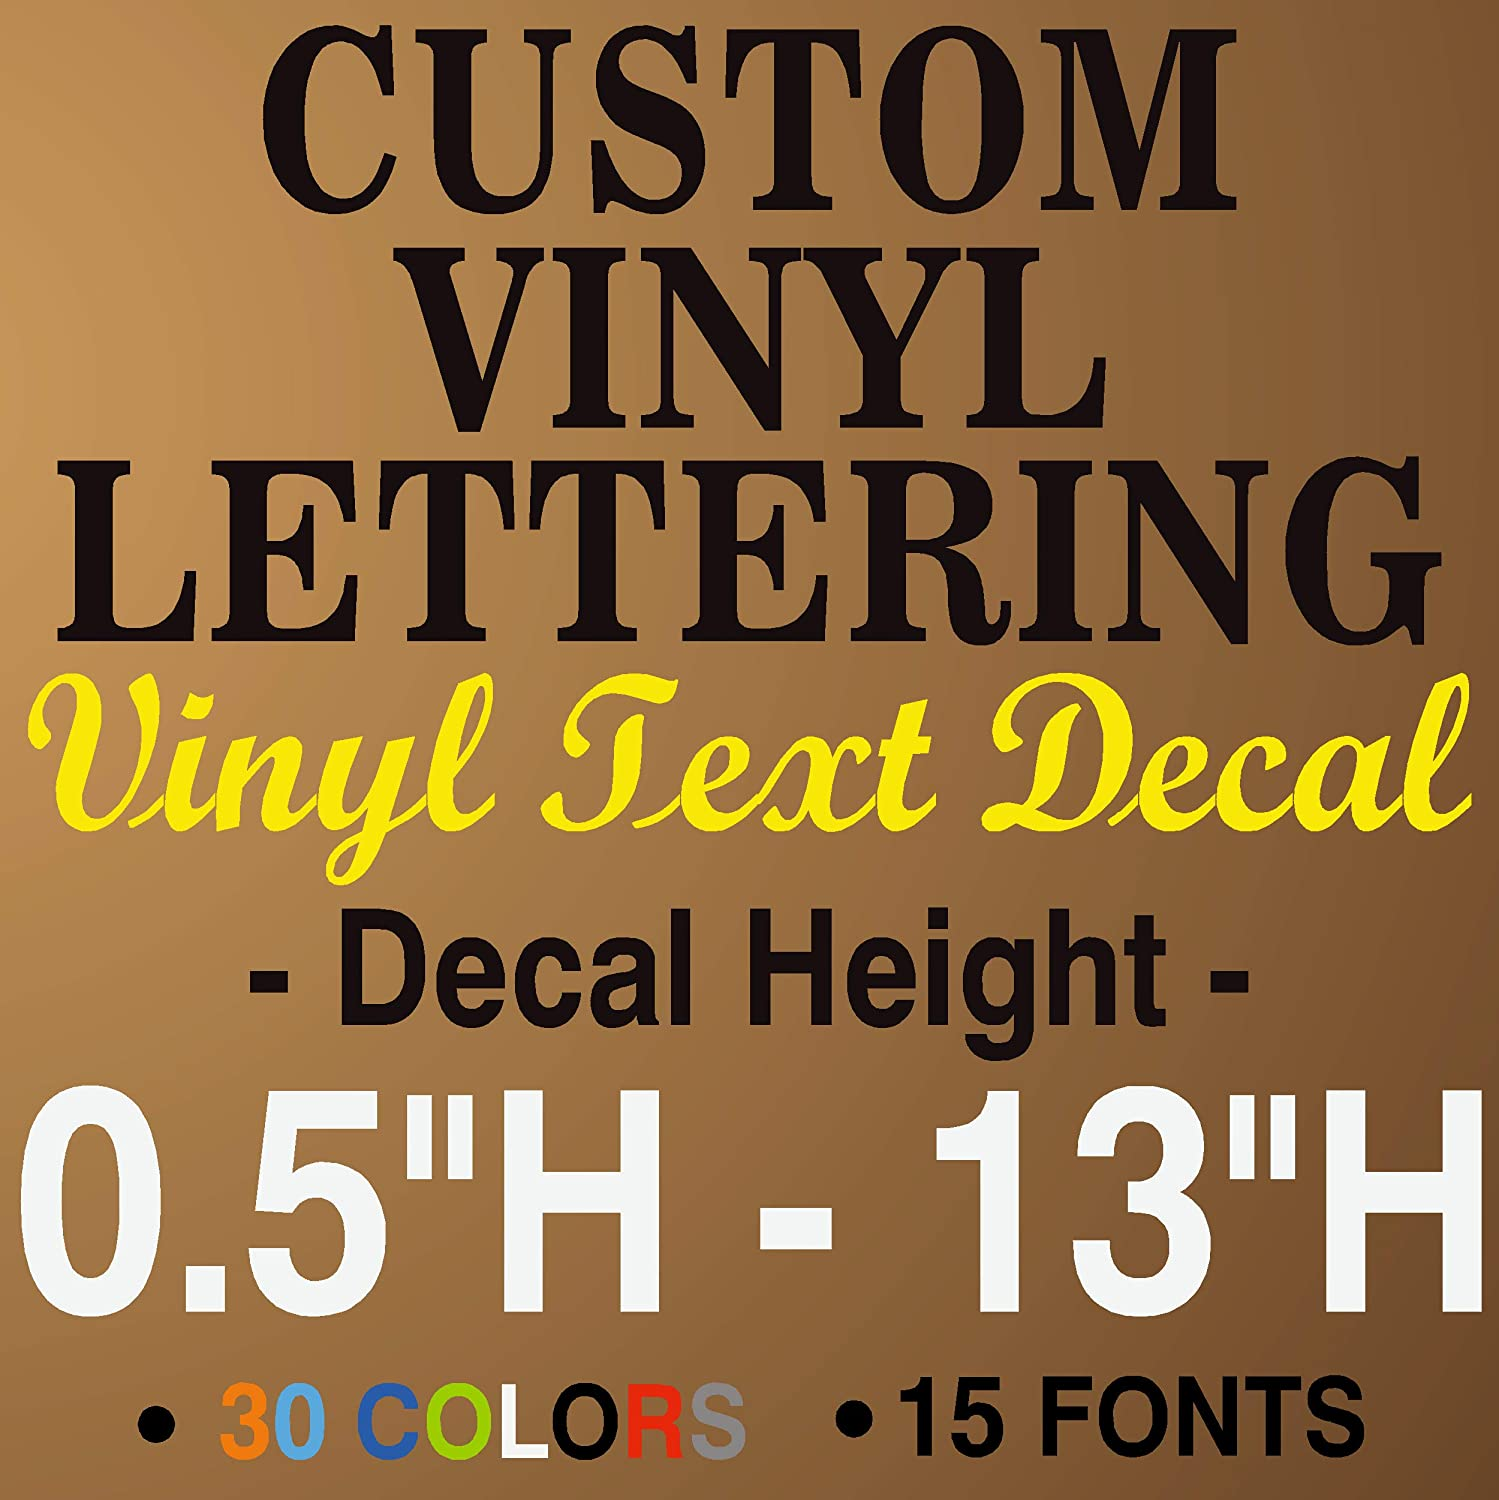 JBY Graphics Custom Vinyl Lettering Decal Personalized Sticker Window Text City Name Car Vehicle Boat Business Store Window Door Vinyl Sign